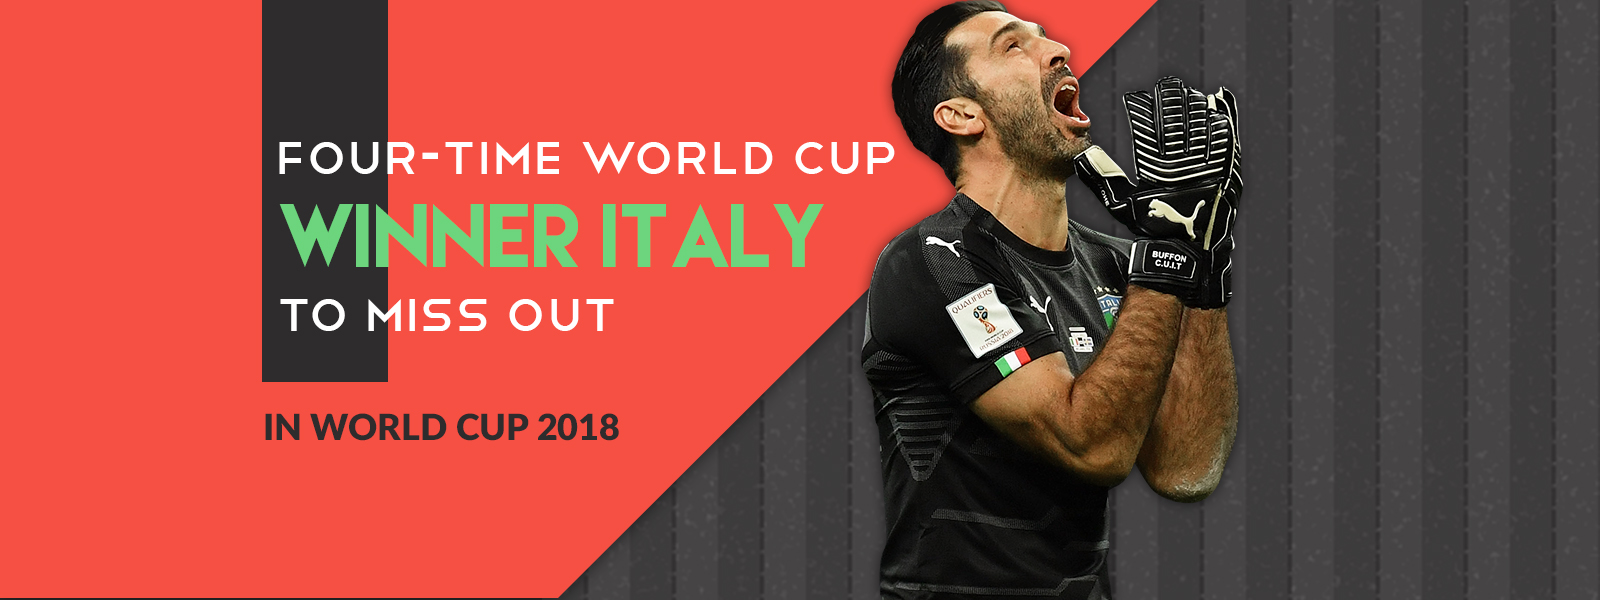 Four-time World Cup Winner Italy To Miss Out In World Cup 2018